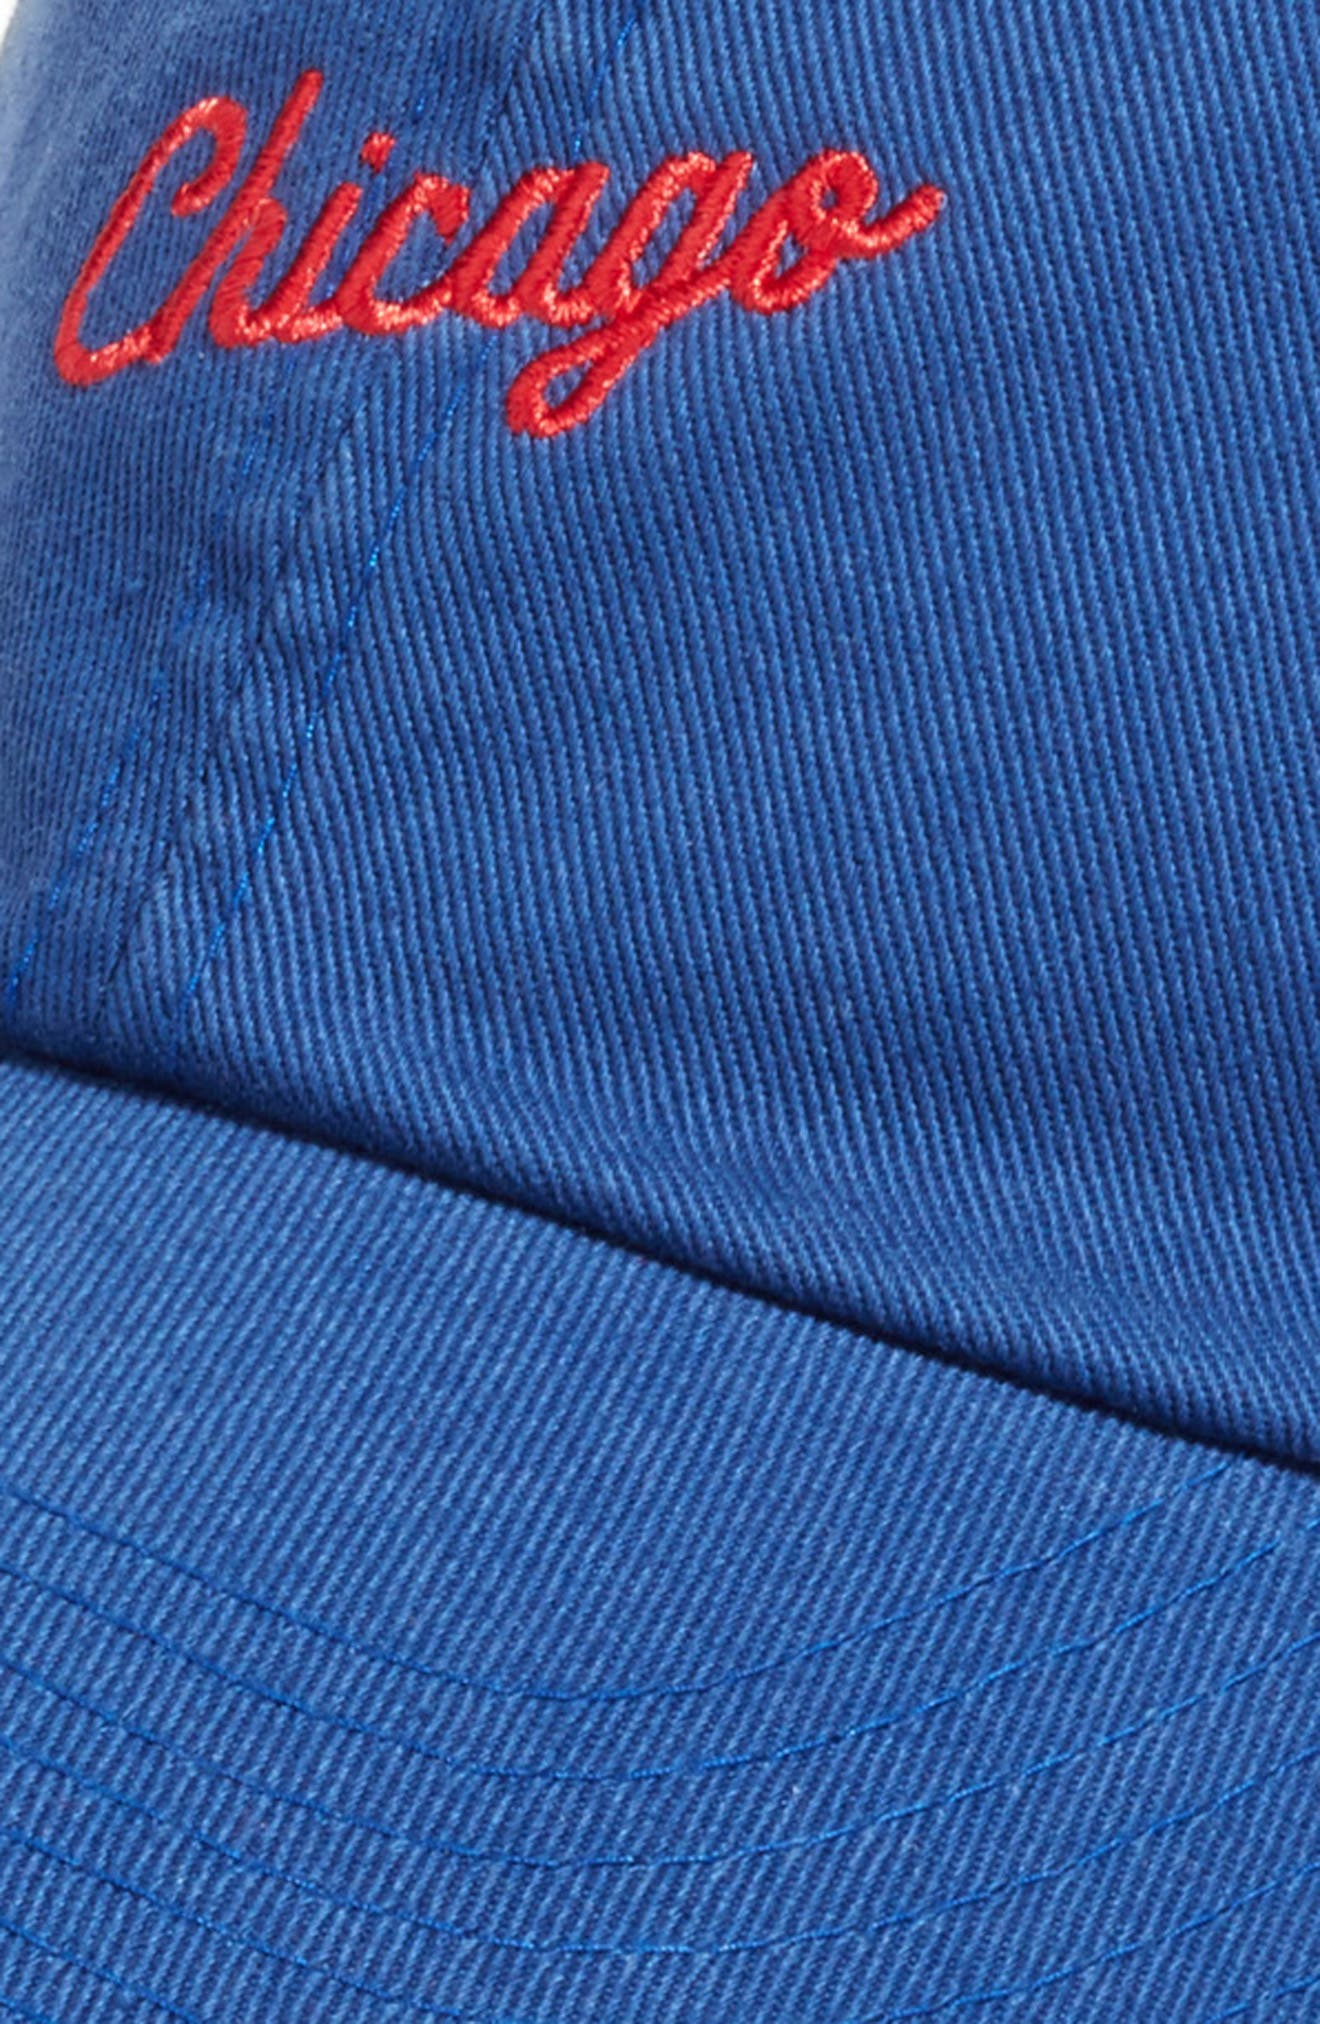 Boardshort - Chicago Baseball Cap,                             Alternate thumbnail 3, color,                             Bay Blue